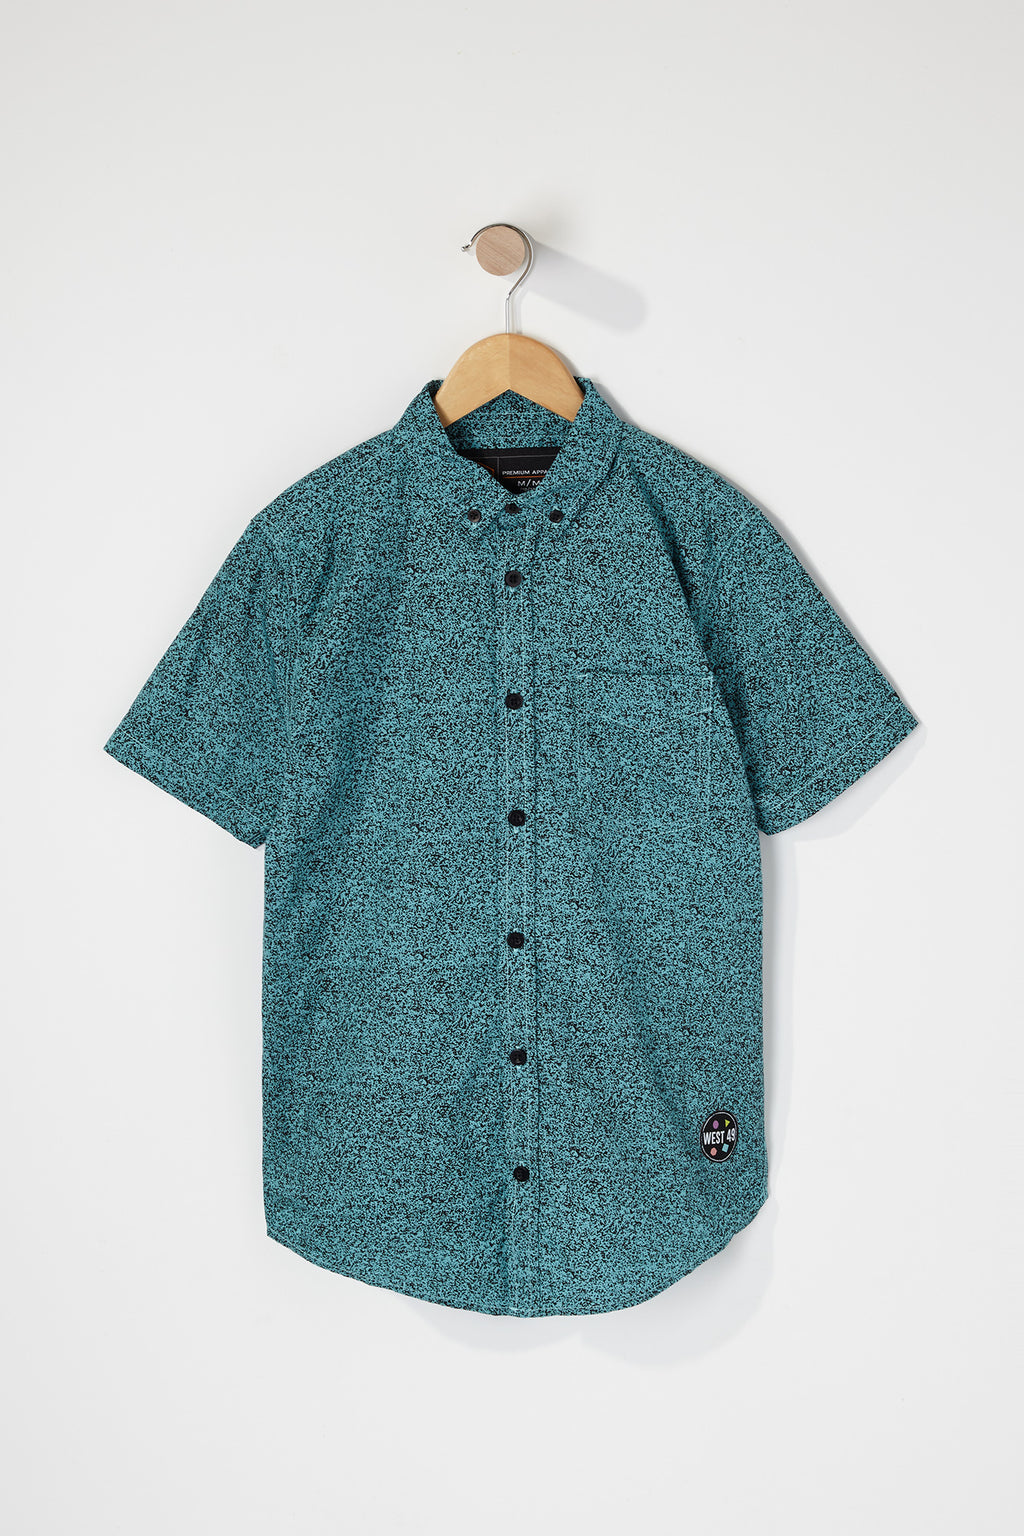 West49 Boys Cotton Speckle Print Button Up Shirt